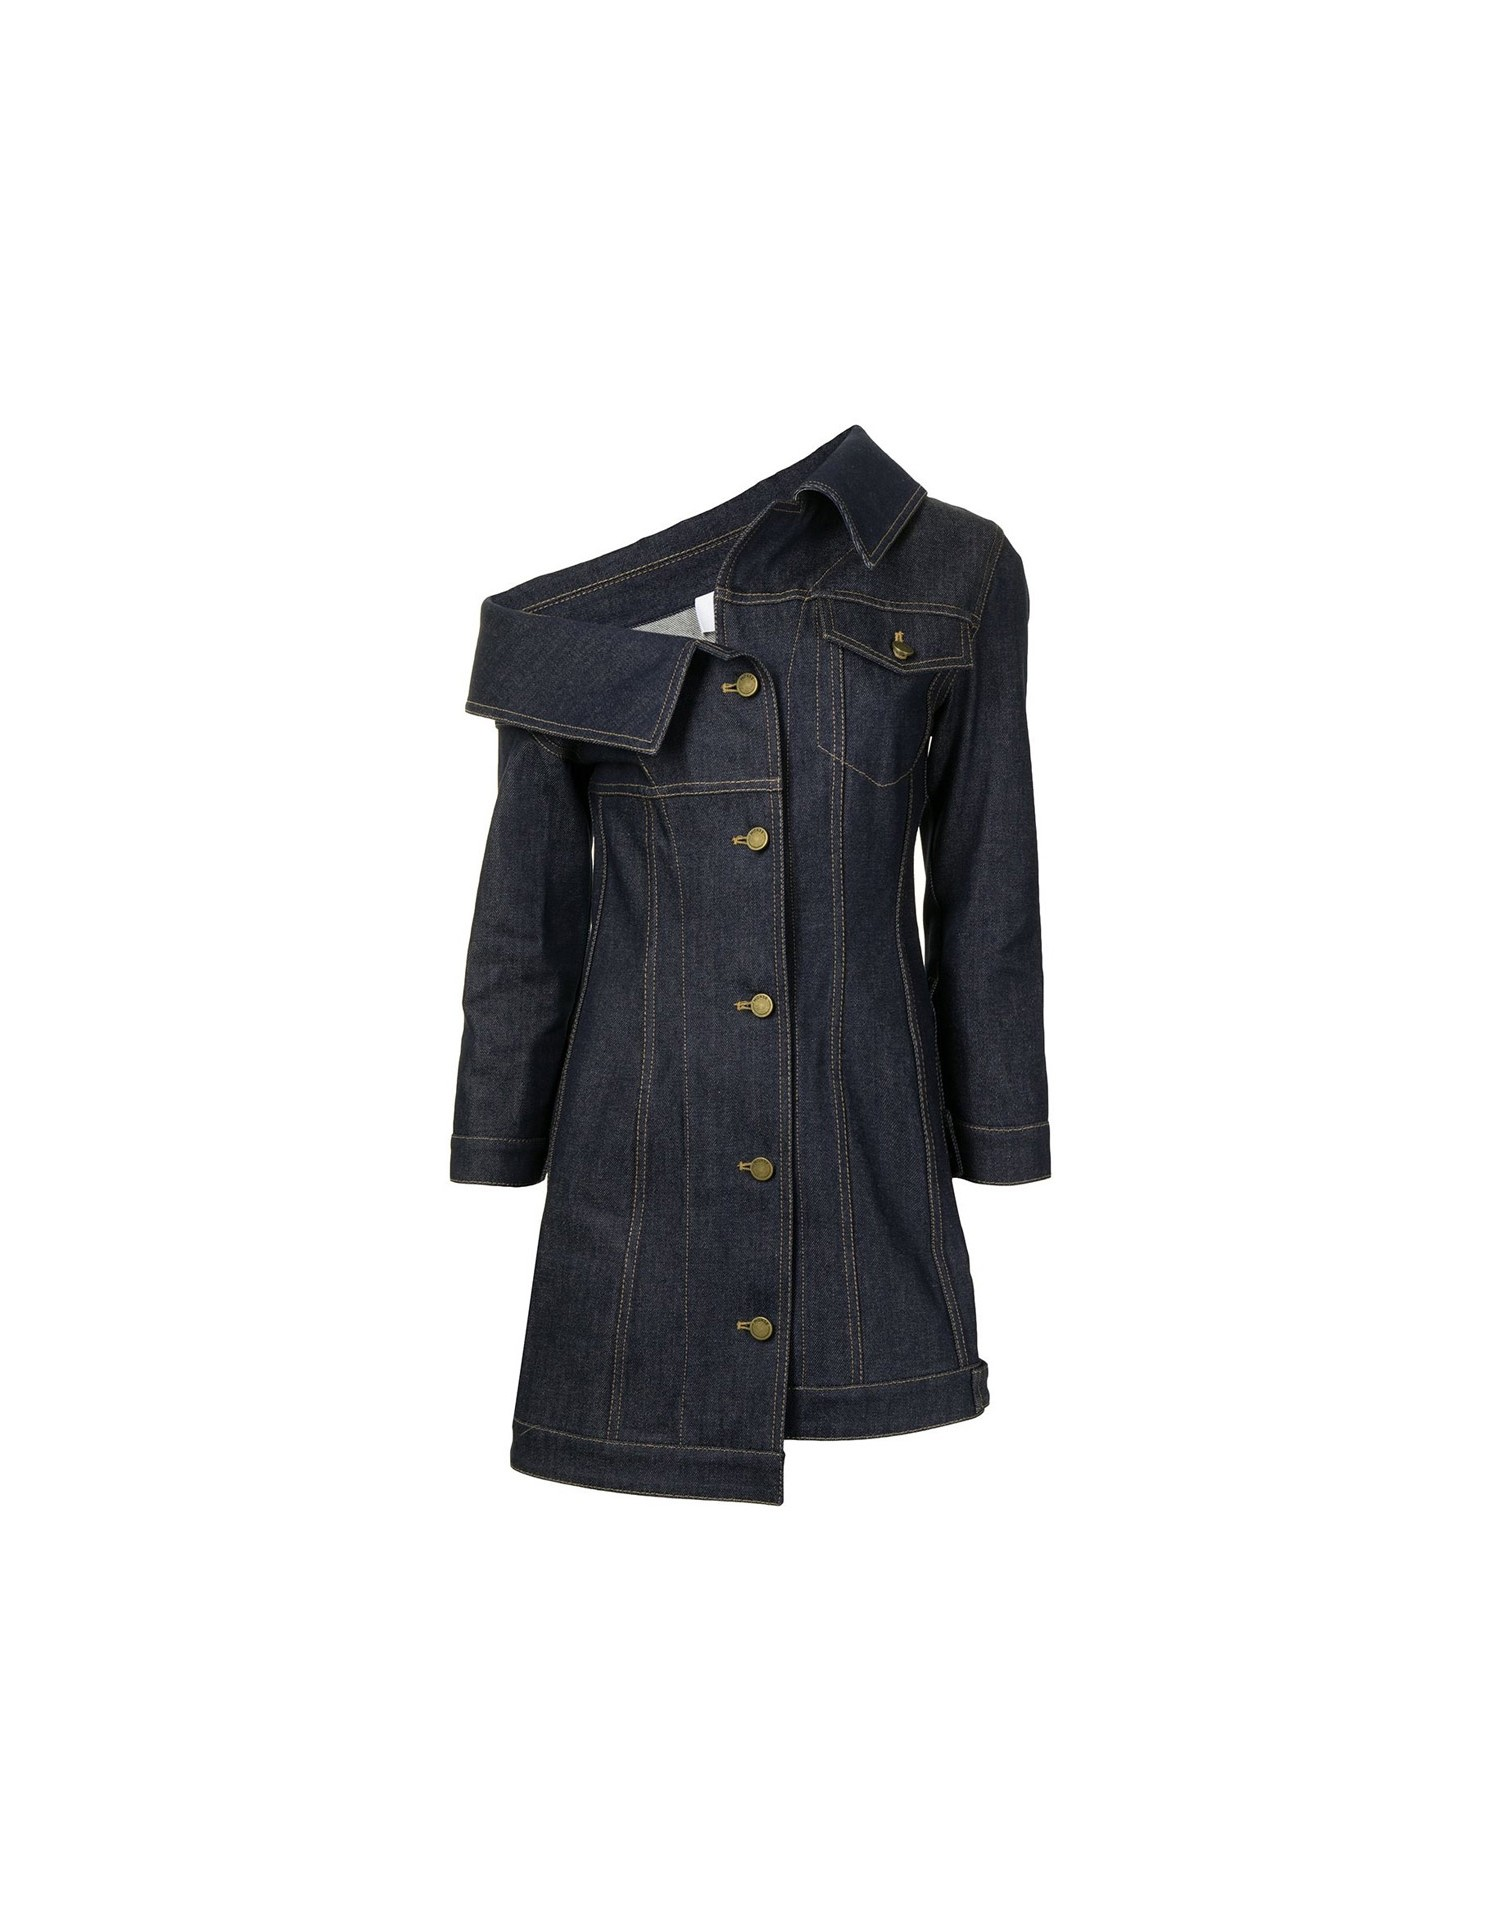 MONSE Crooked Denim Jacket Dress Flat Front